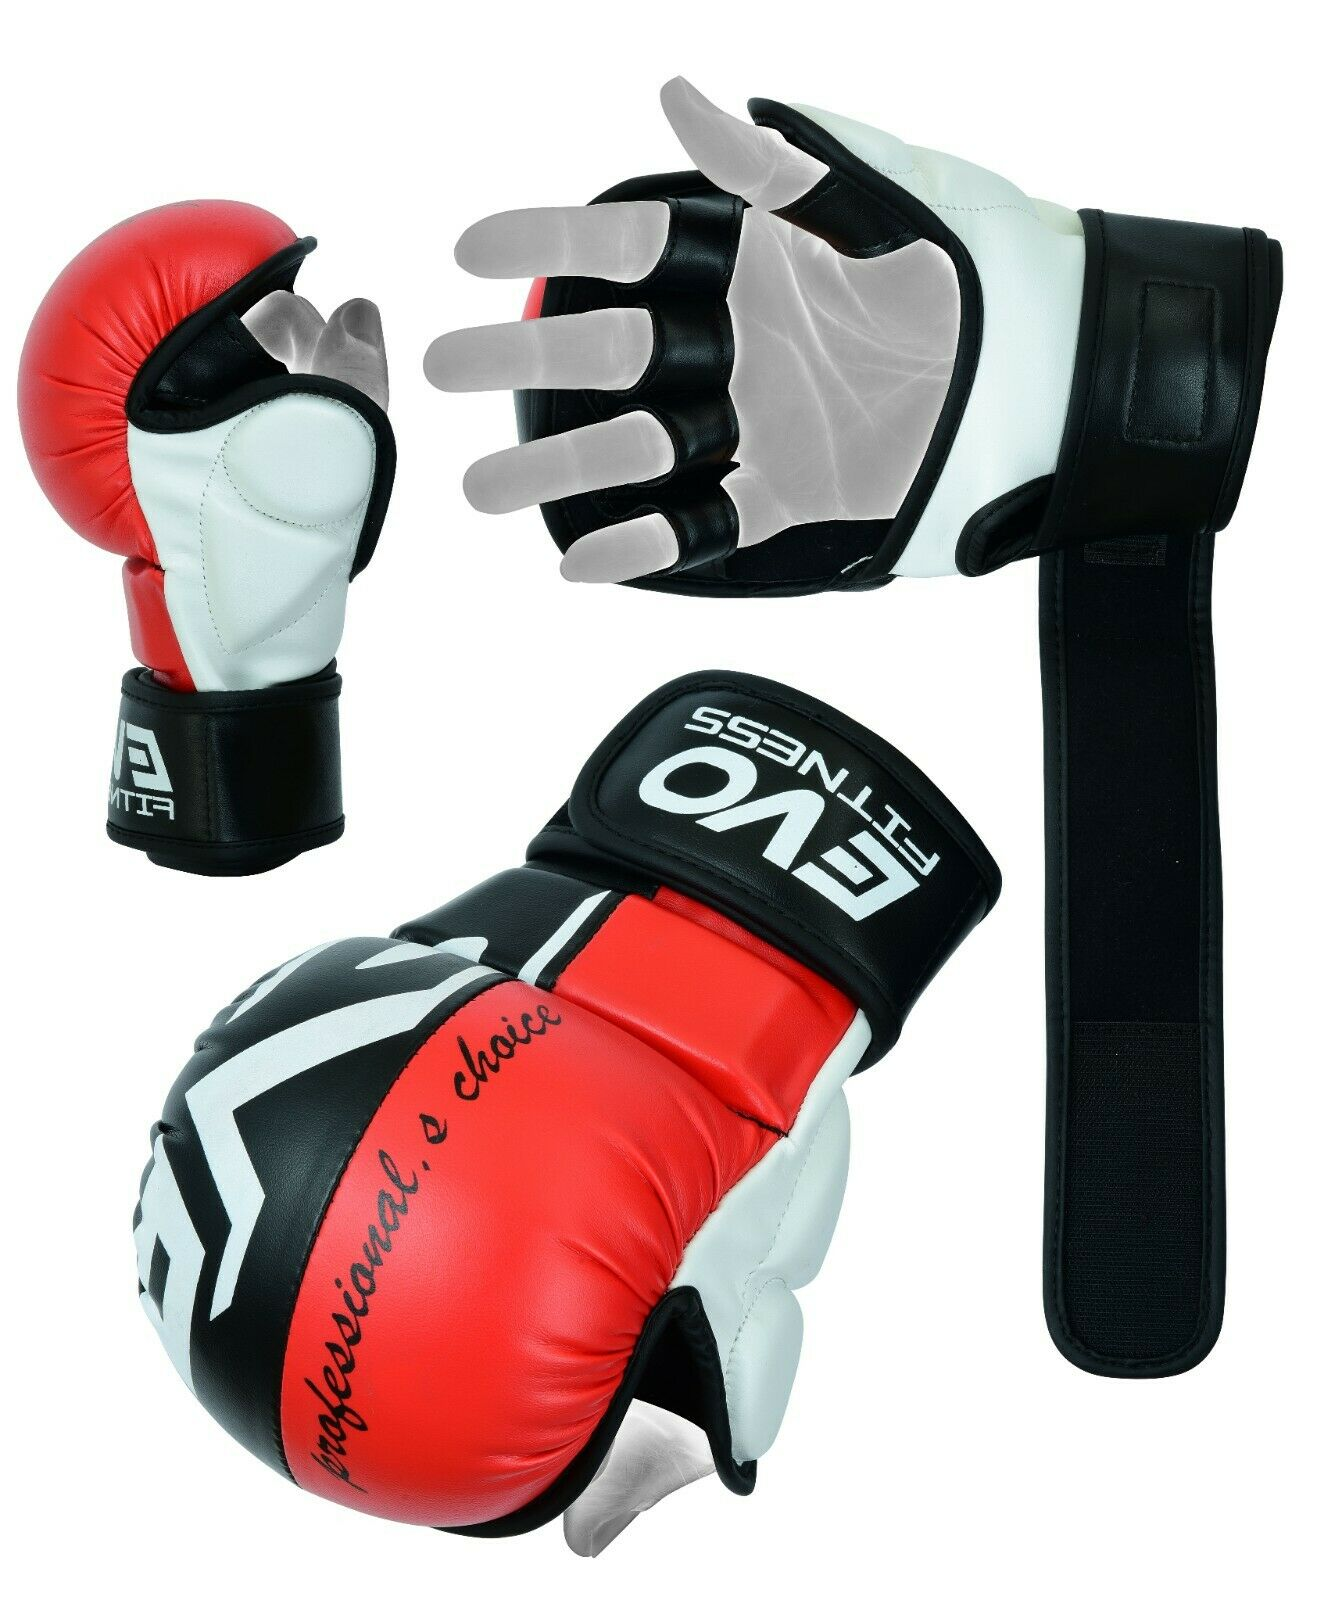 EVO Leather MMA Gloves Body Combat Muay Thai Gel Kickboxing Grappling Sparring Training UFC Cage Fighting Mitts Punching Bag Martial Arts Karate